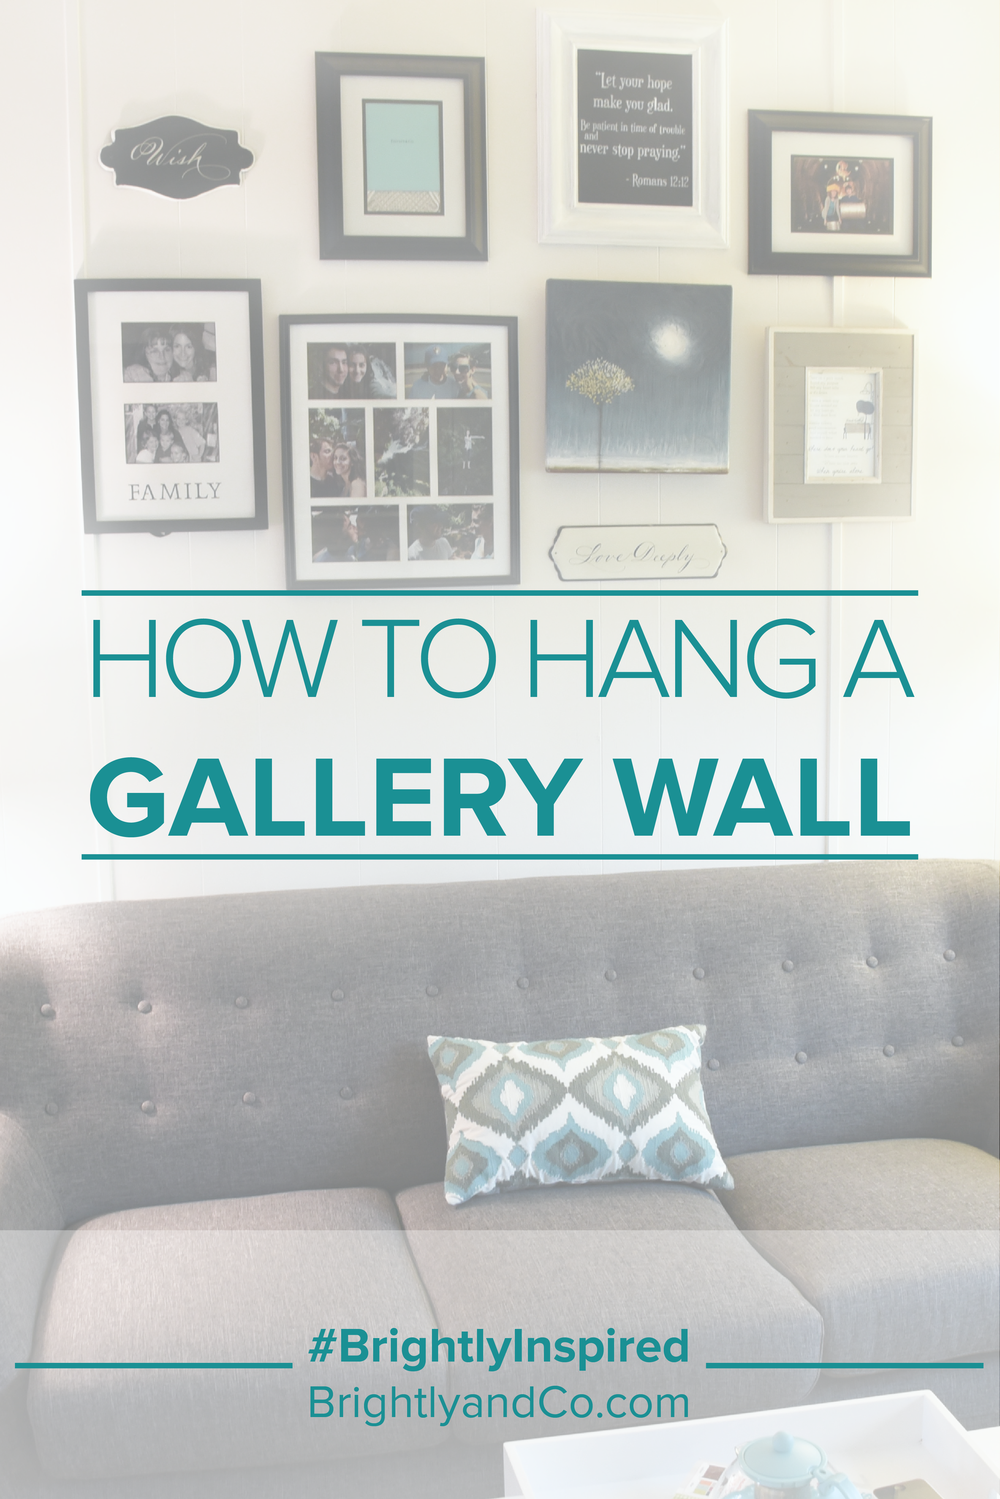 How to hang a gallery wall - #BrightlyandCo. www.BrightlyandCo.com